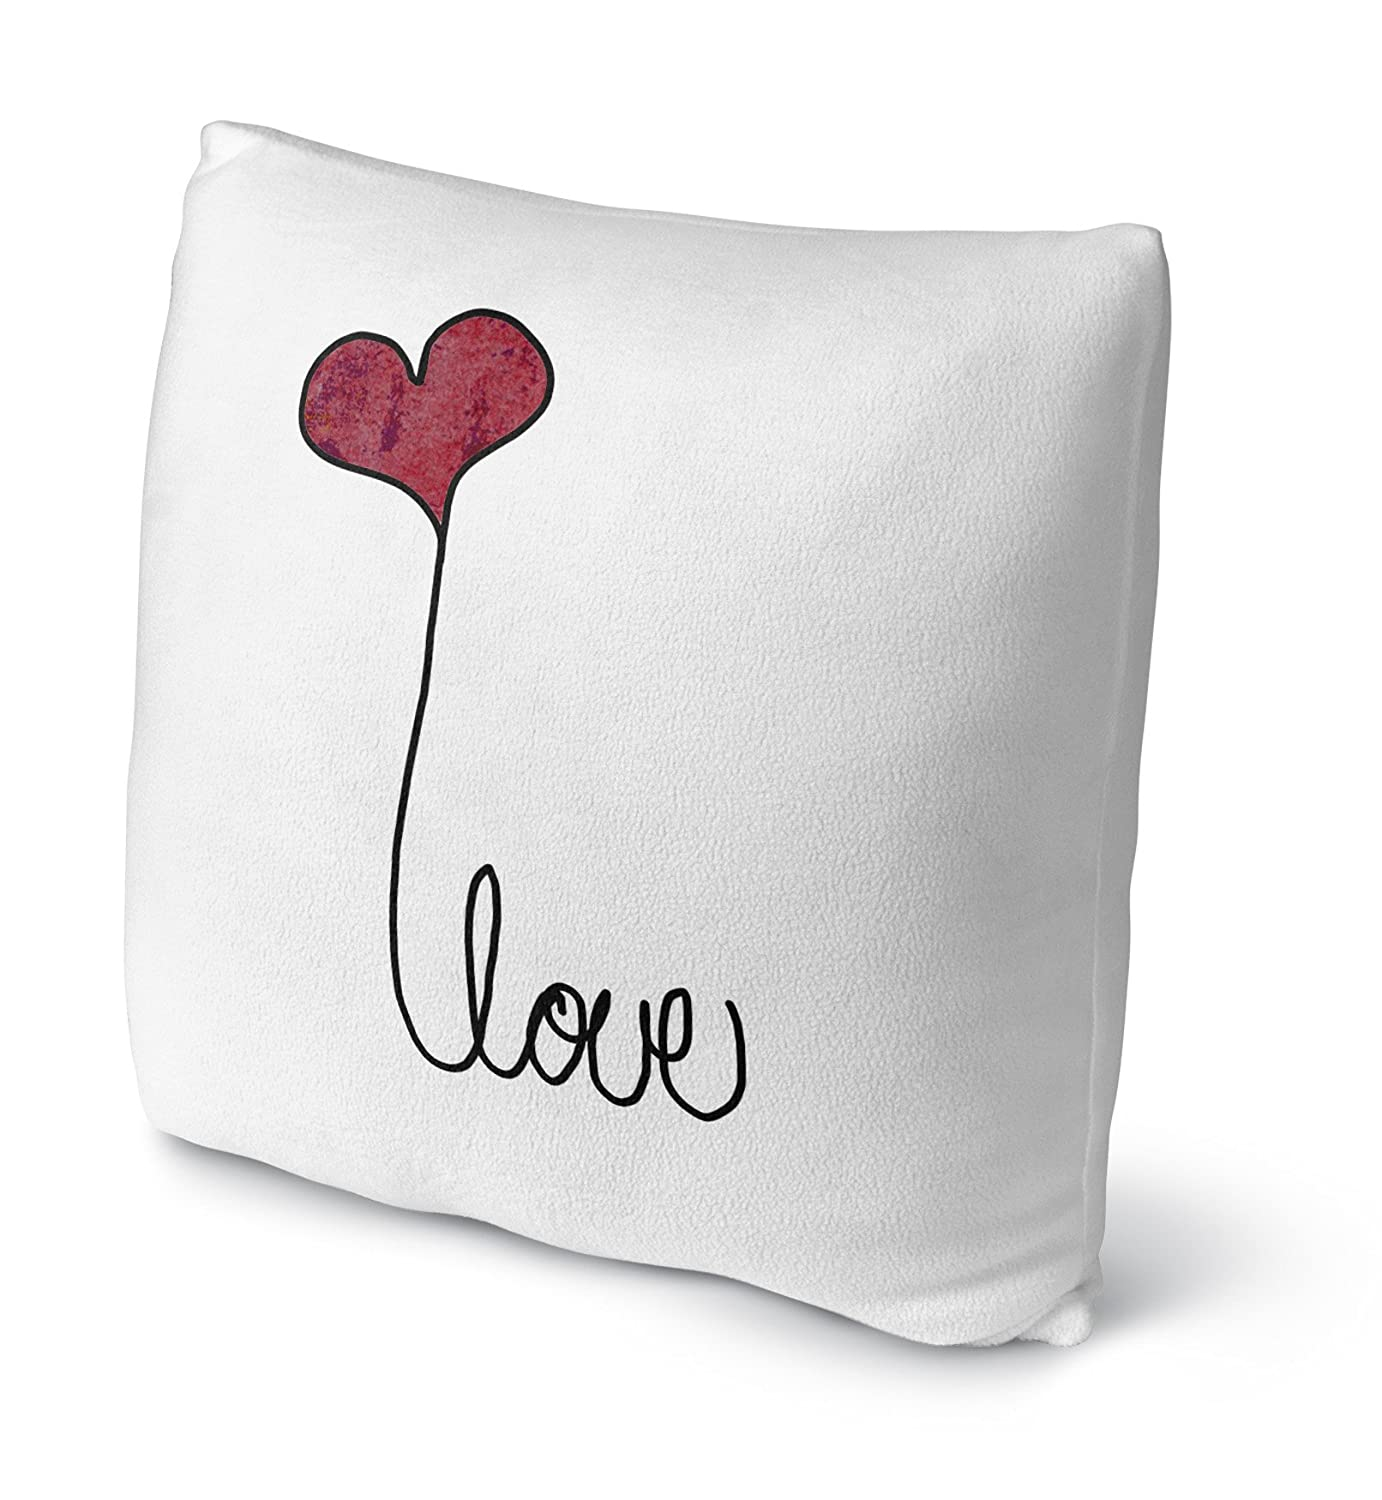 Red//Black Size: 18X18X4 - TELAVC8042FBS18 - Inspo Collection KAVKA Designs Love A Fleece Throw Pillow,